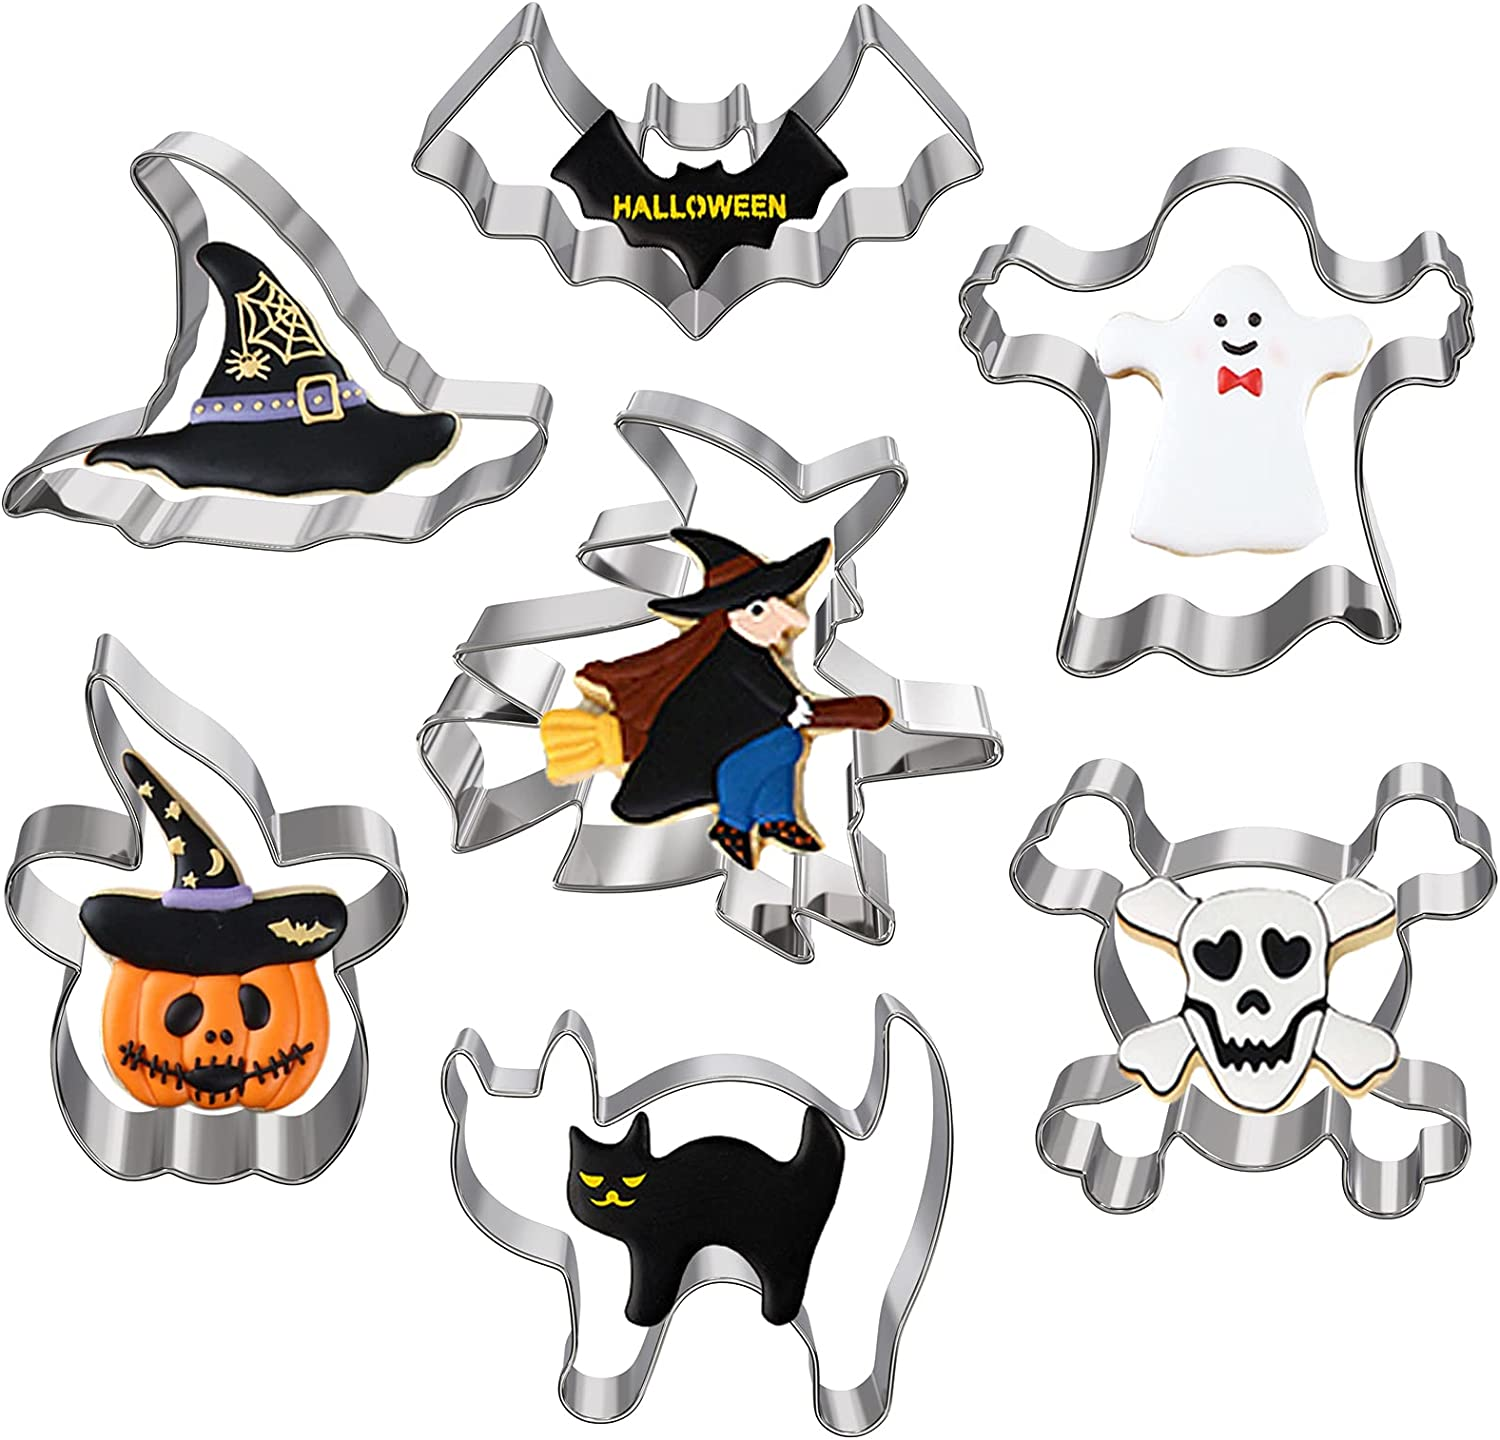 Hibery Halloween Cookie Max 69% OFF Cutters Set Pumpkin Cooki Reservation Holiday 7 Pcs